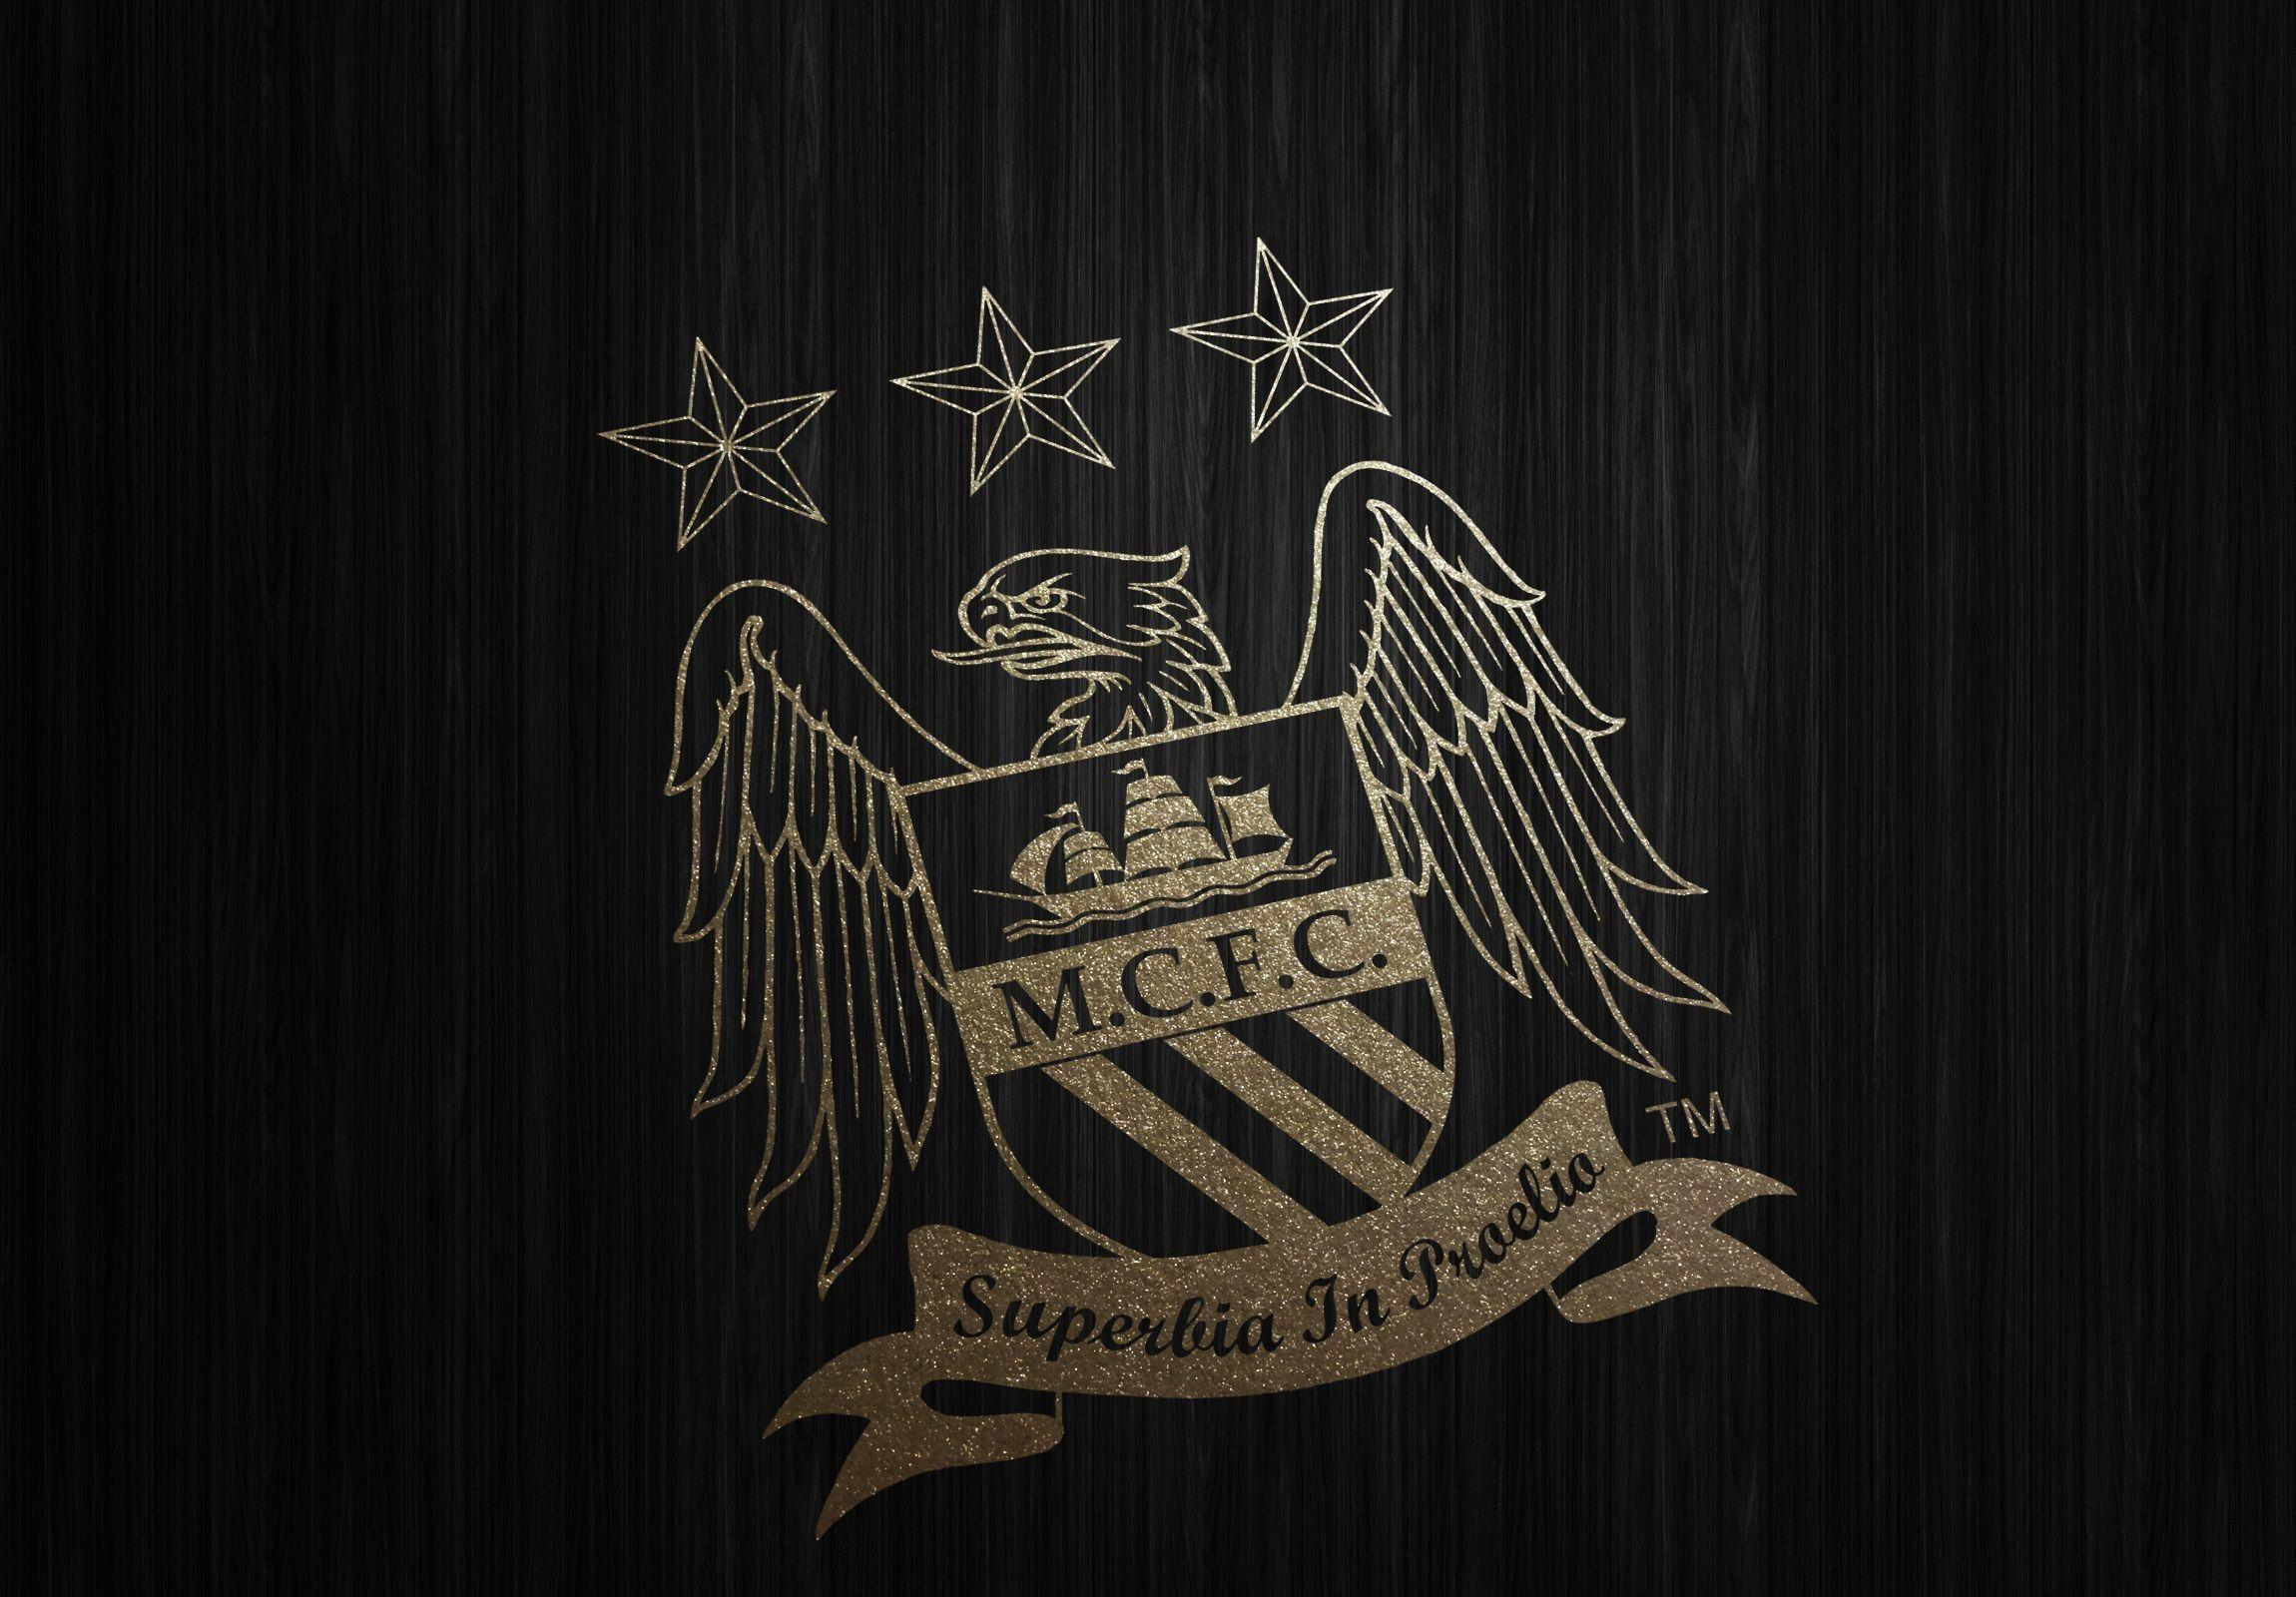 Man City Wallpapers Wallpaper Cave